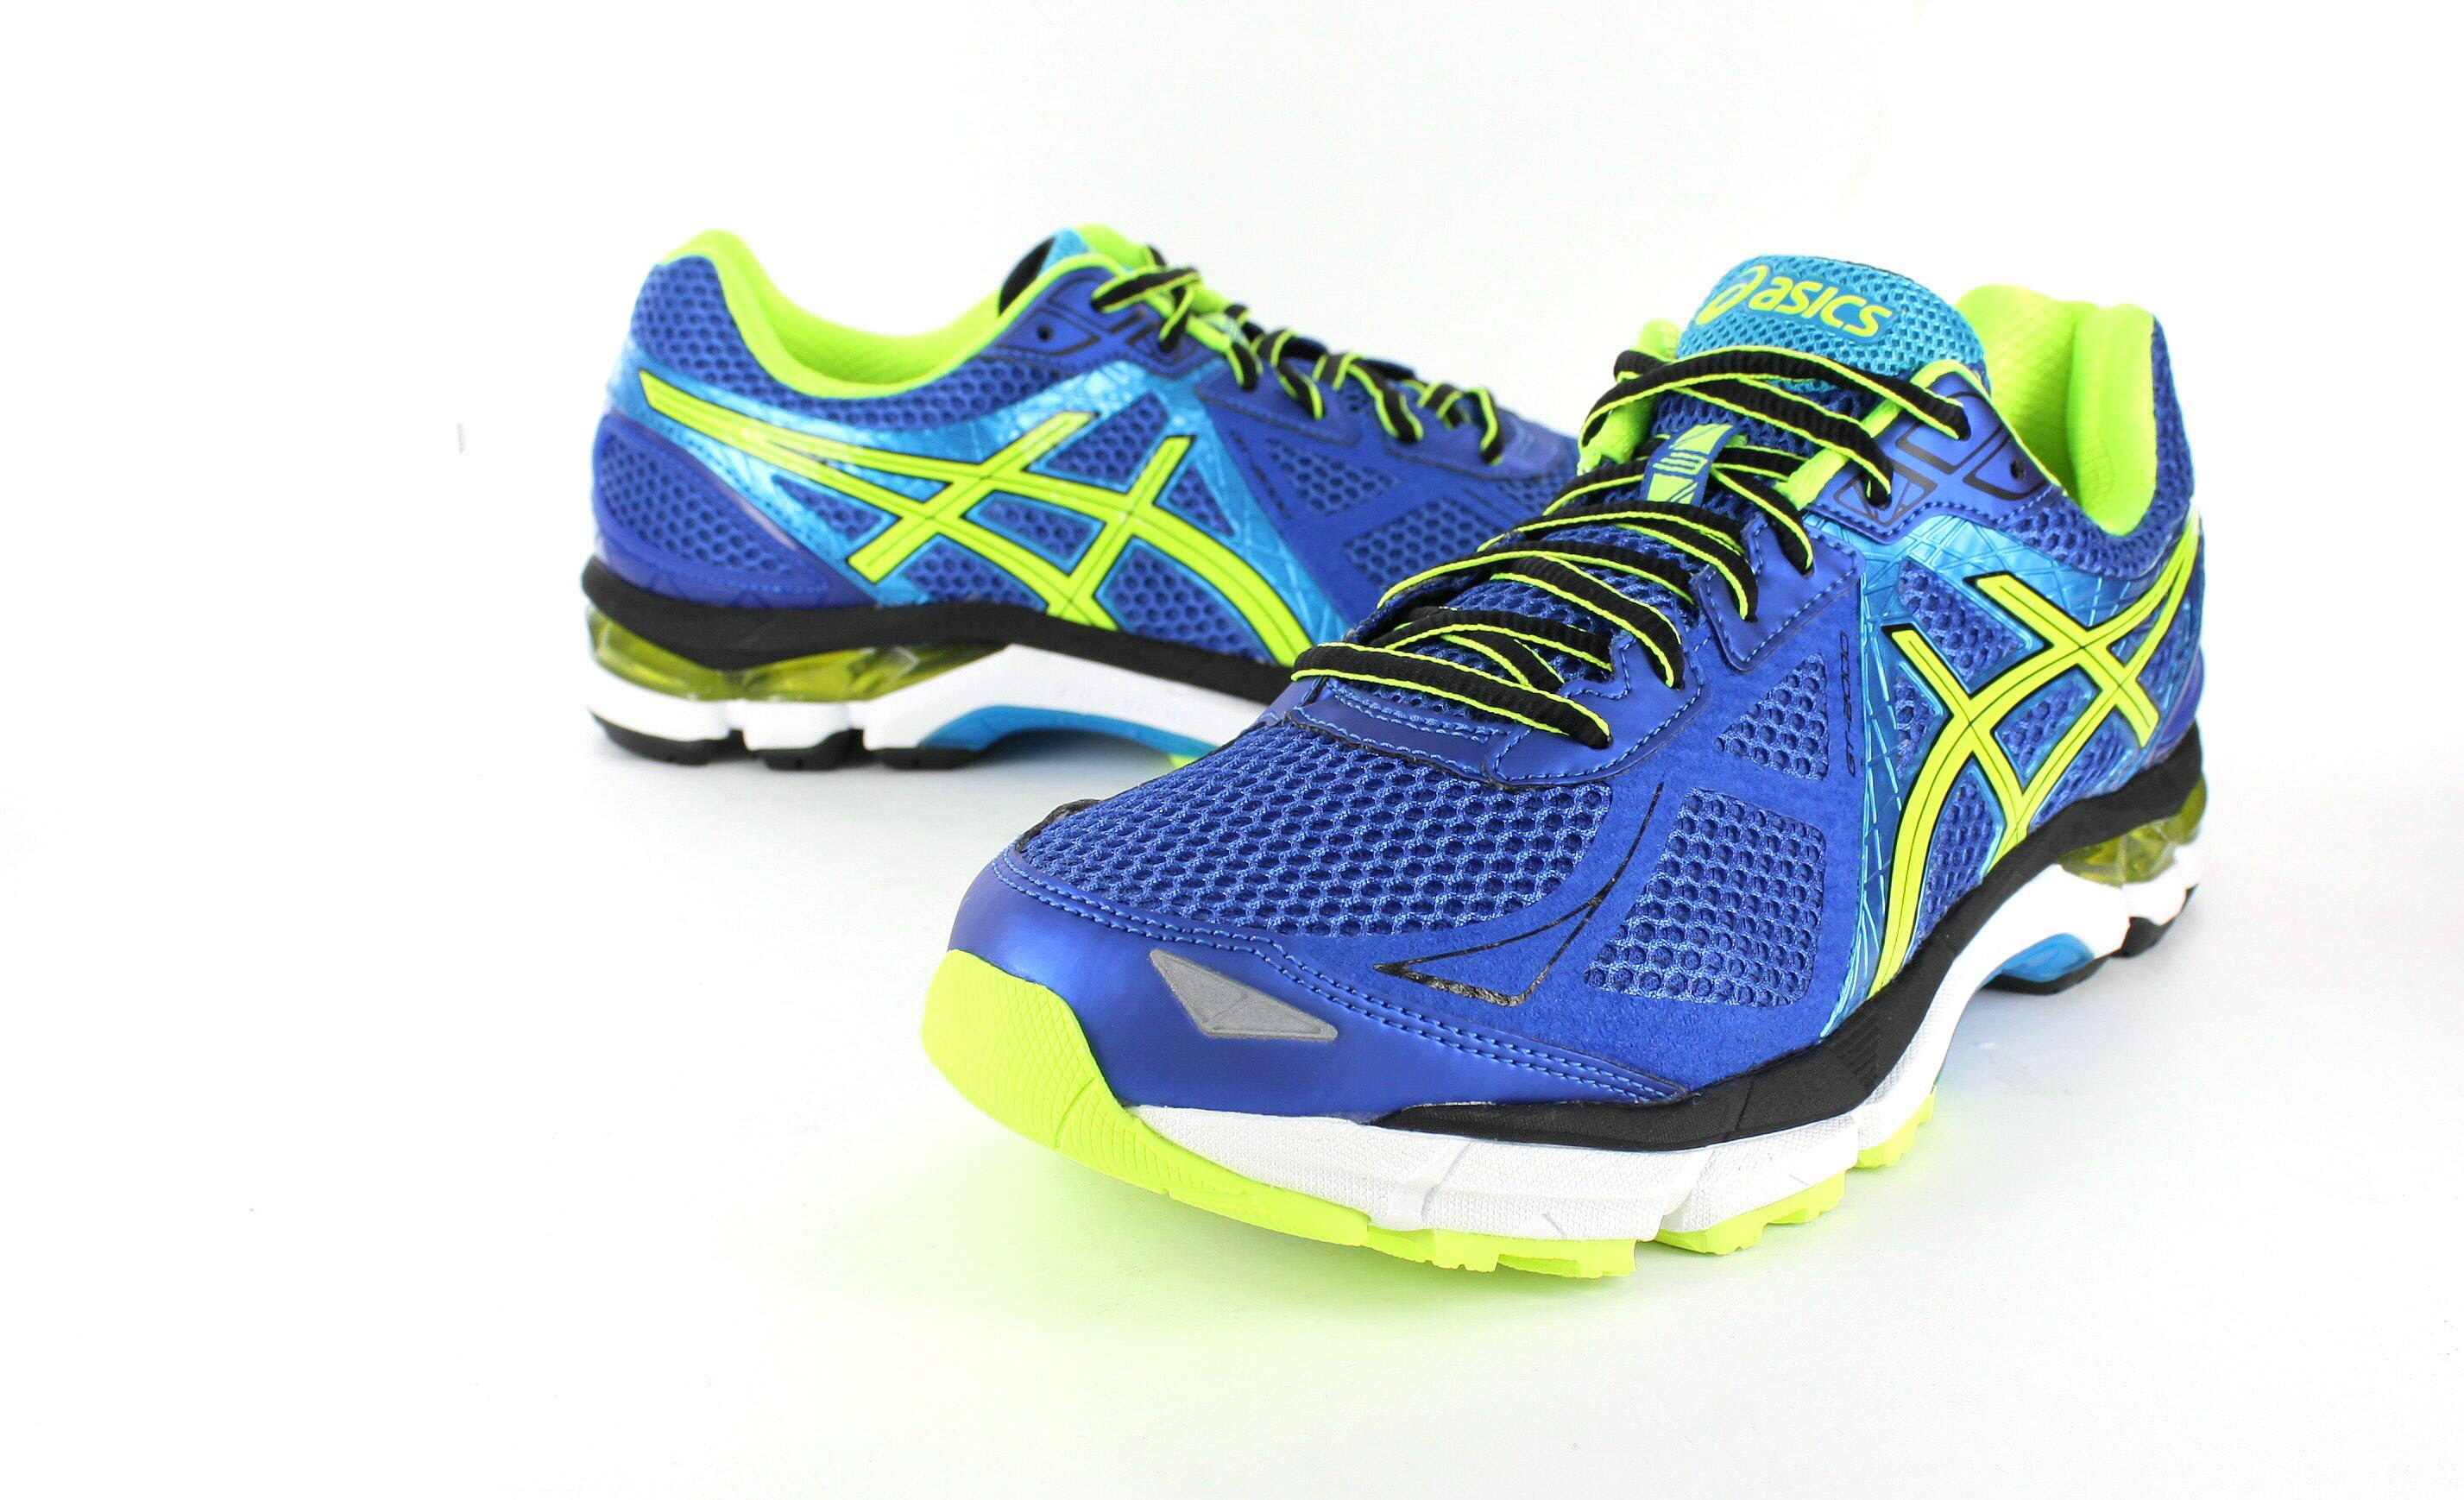 b91a3b7afd Asics Gt 2000 3   Buy Discount Shoes from Asics and Converse ...